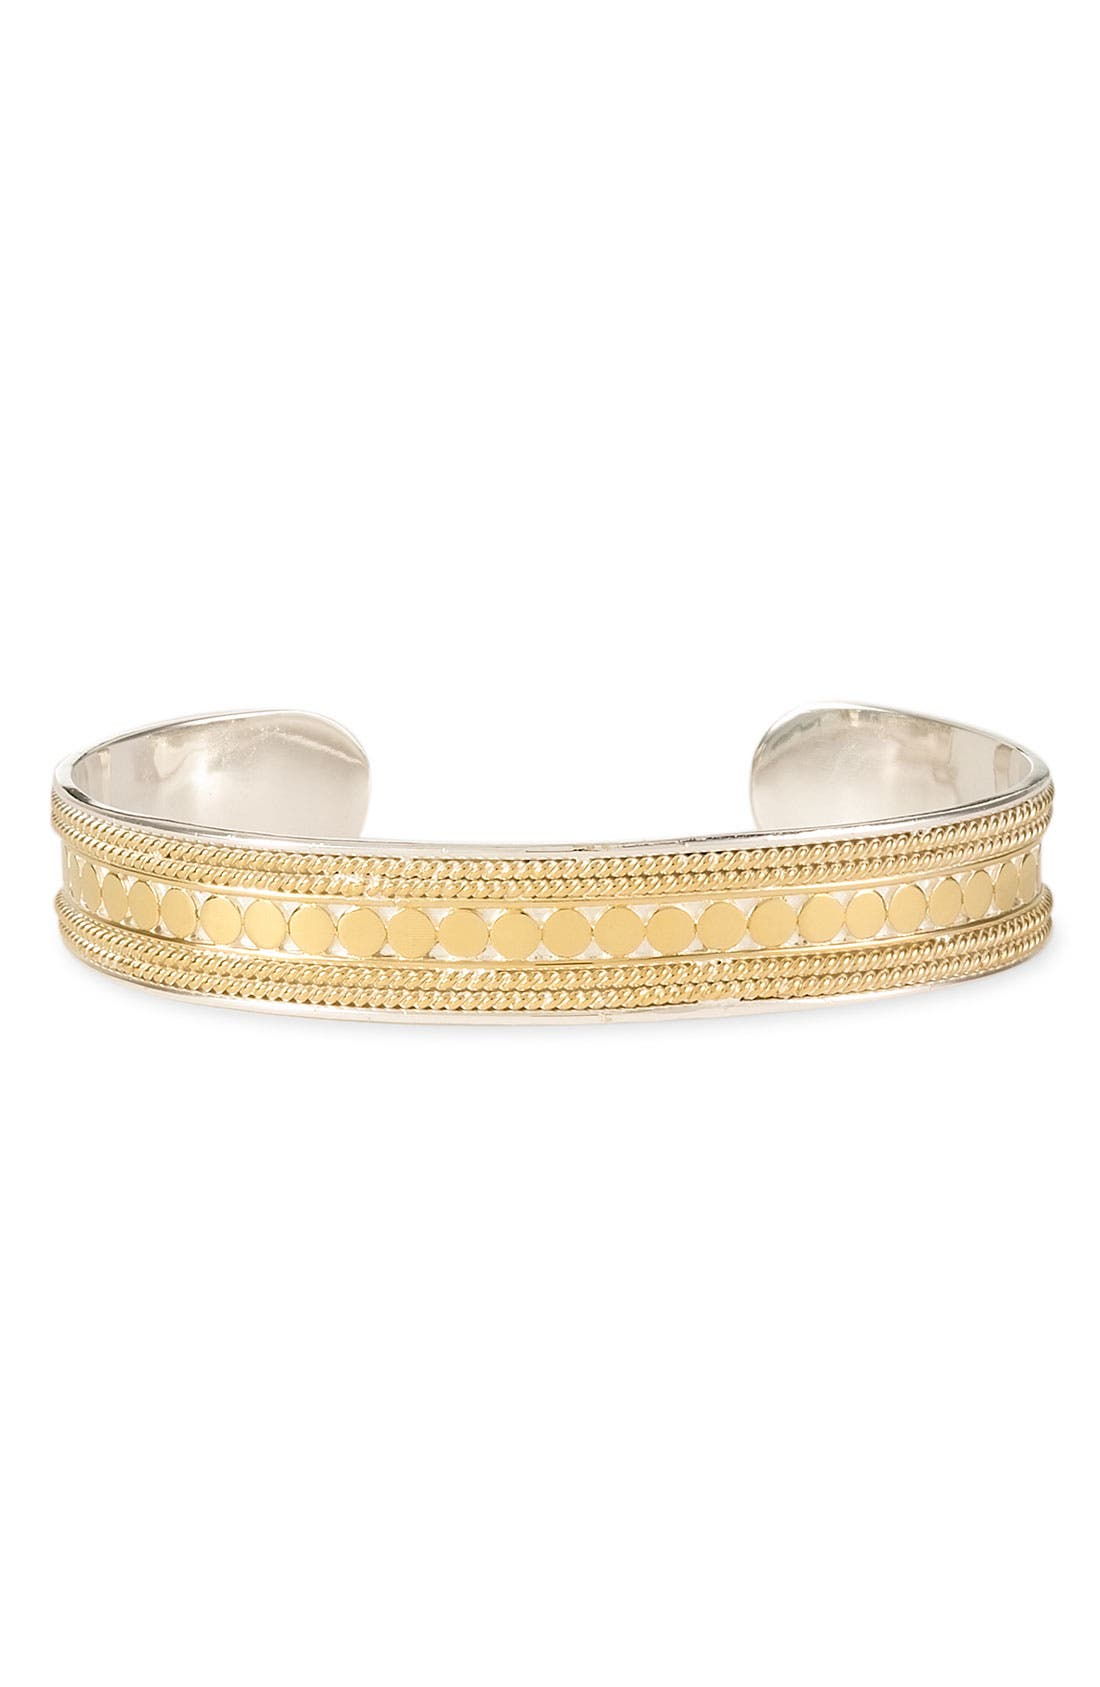 'Gili' Skinny Cuff Bracelet,                         Main,                         color, GOLD / SILVER